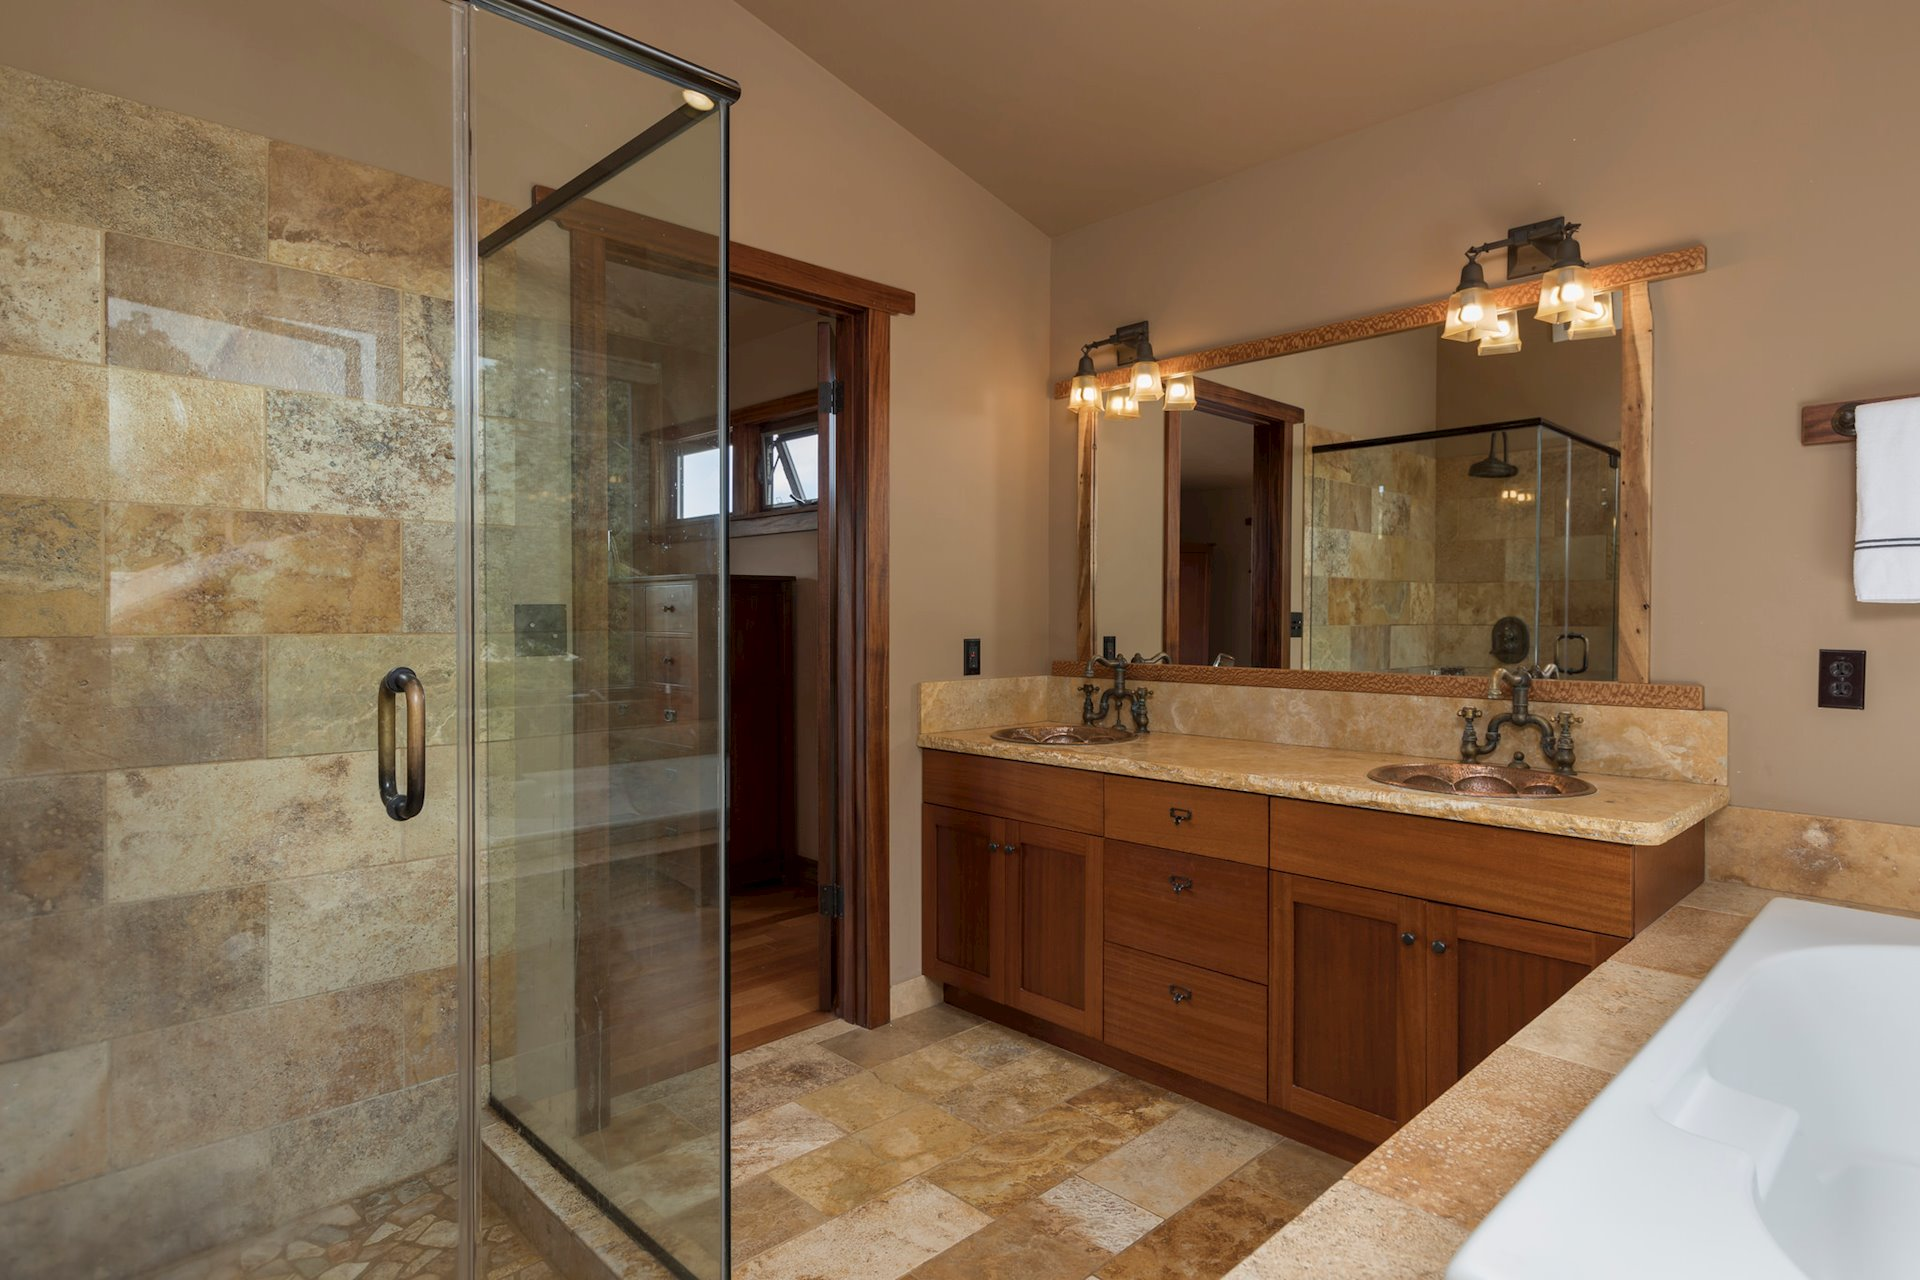 Master bath with walk in shower, tub and double sinks.